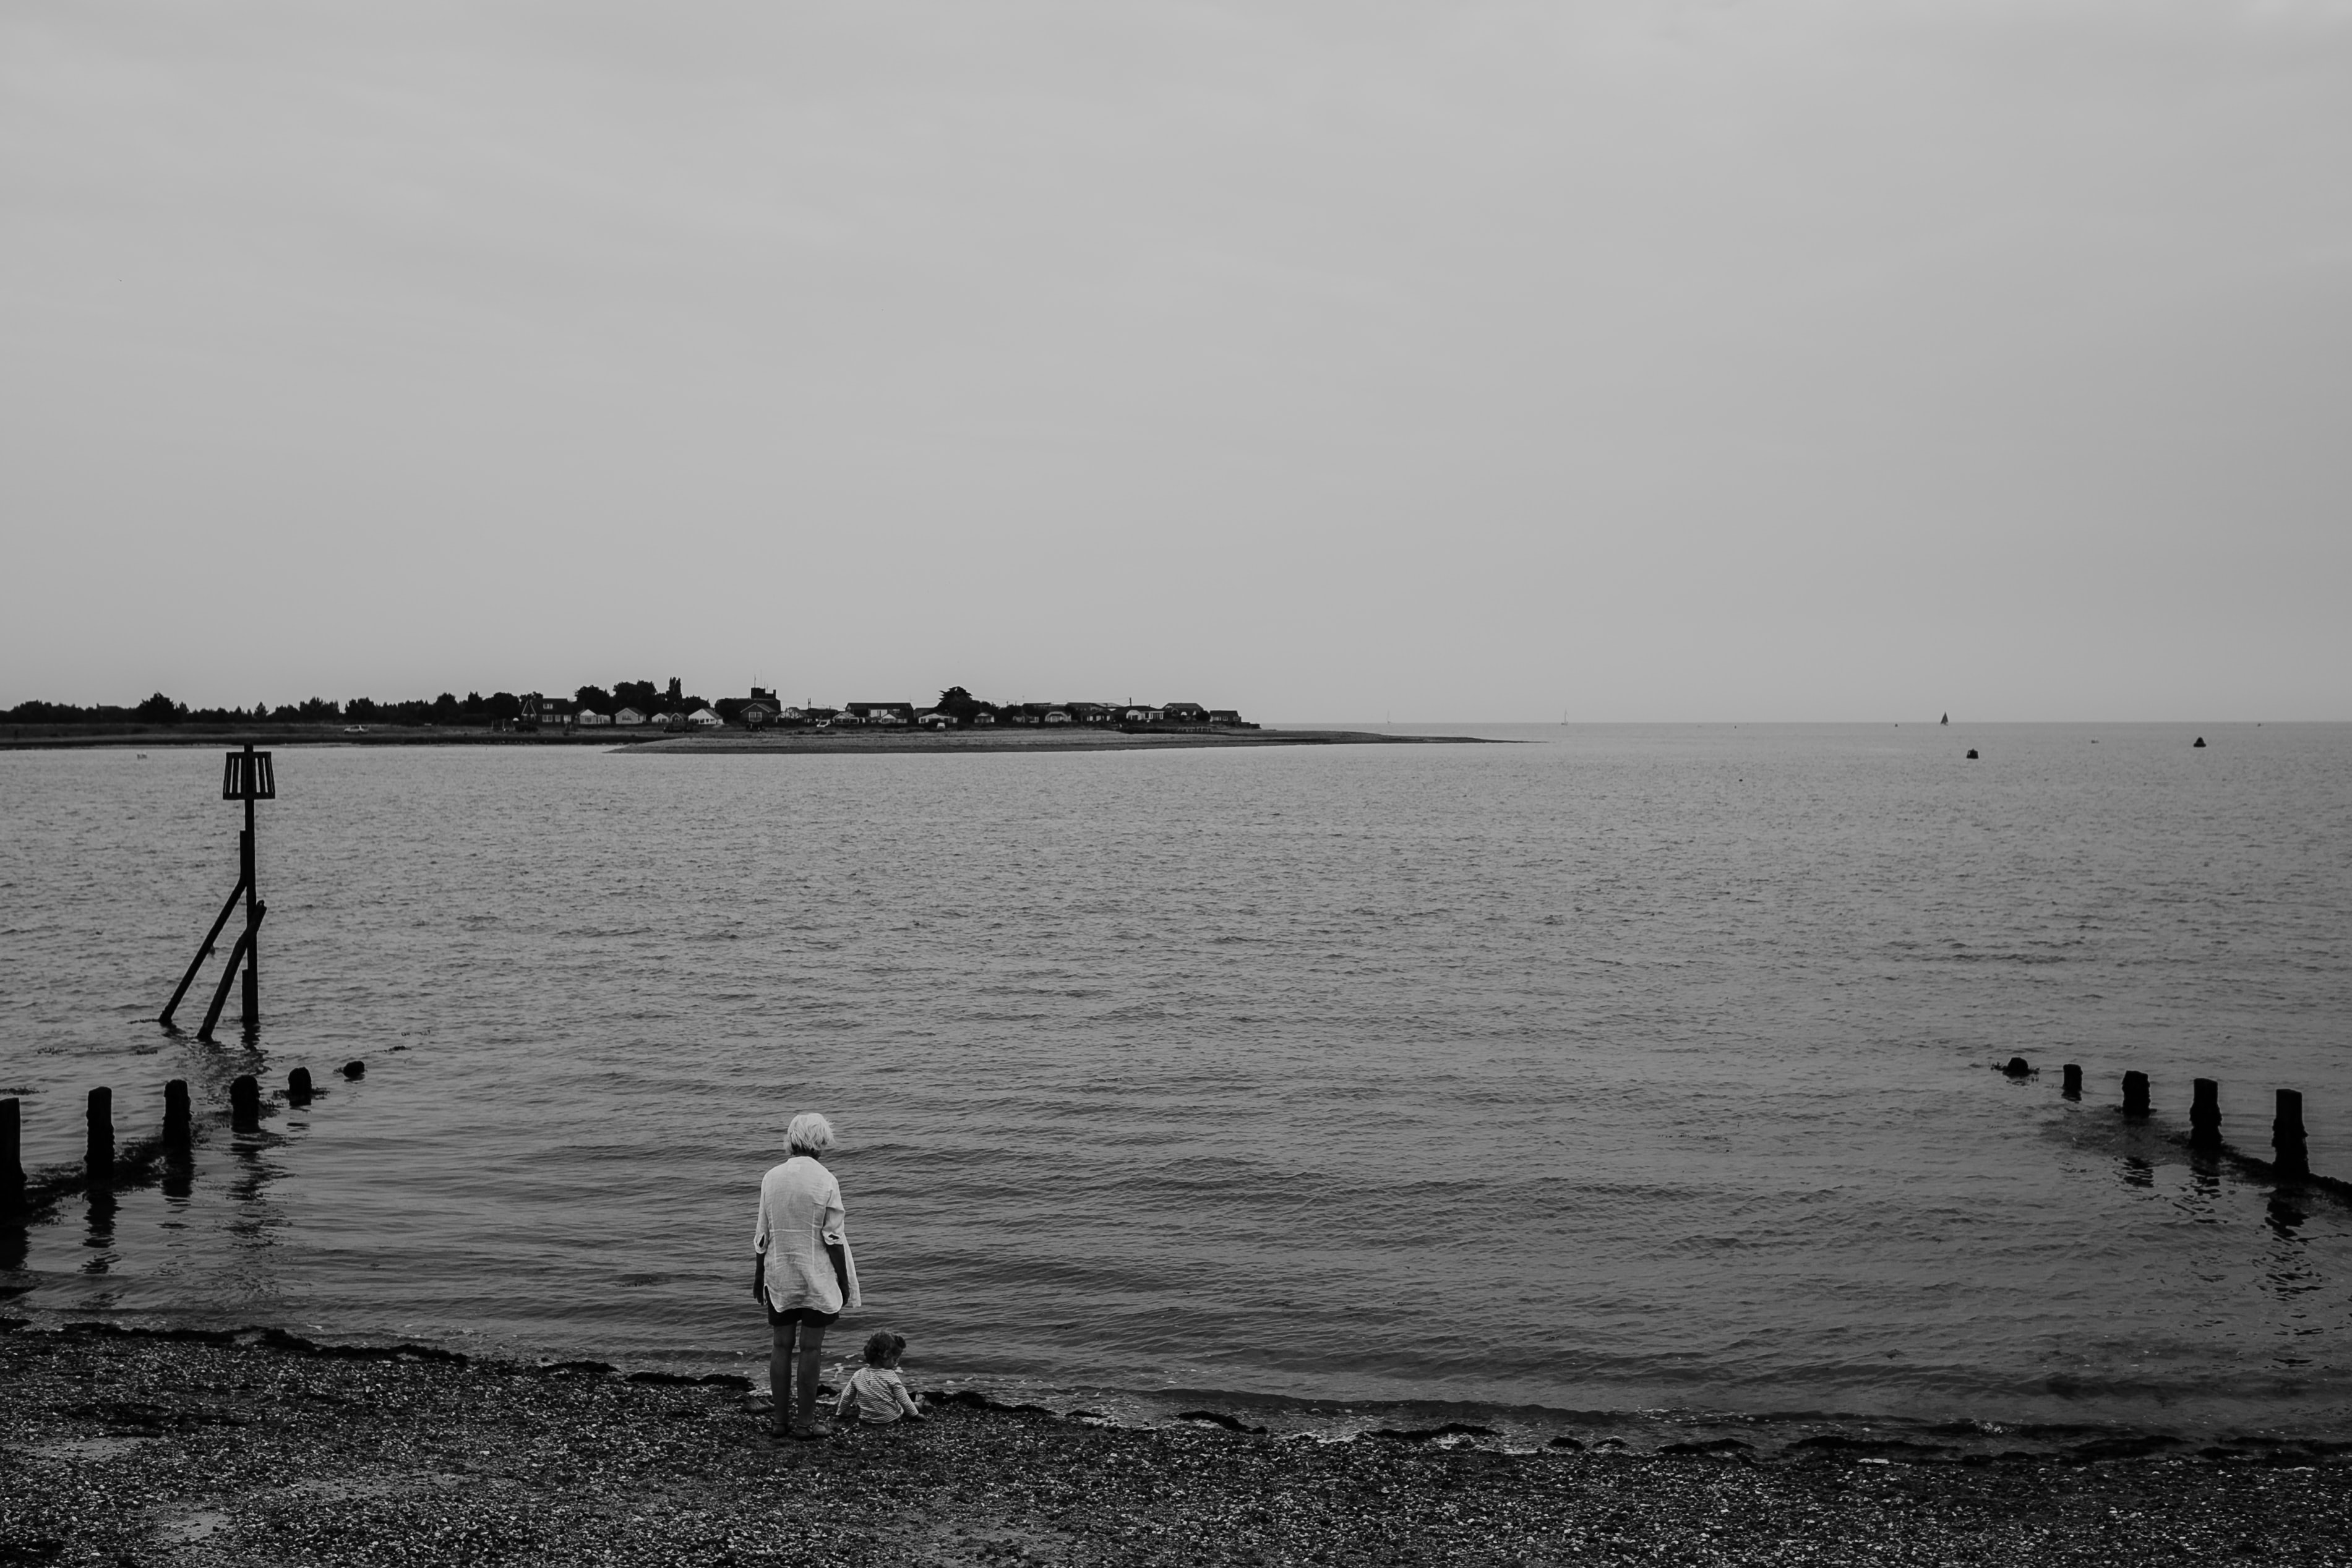 grayscale photo of woman and toddler near body of water